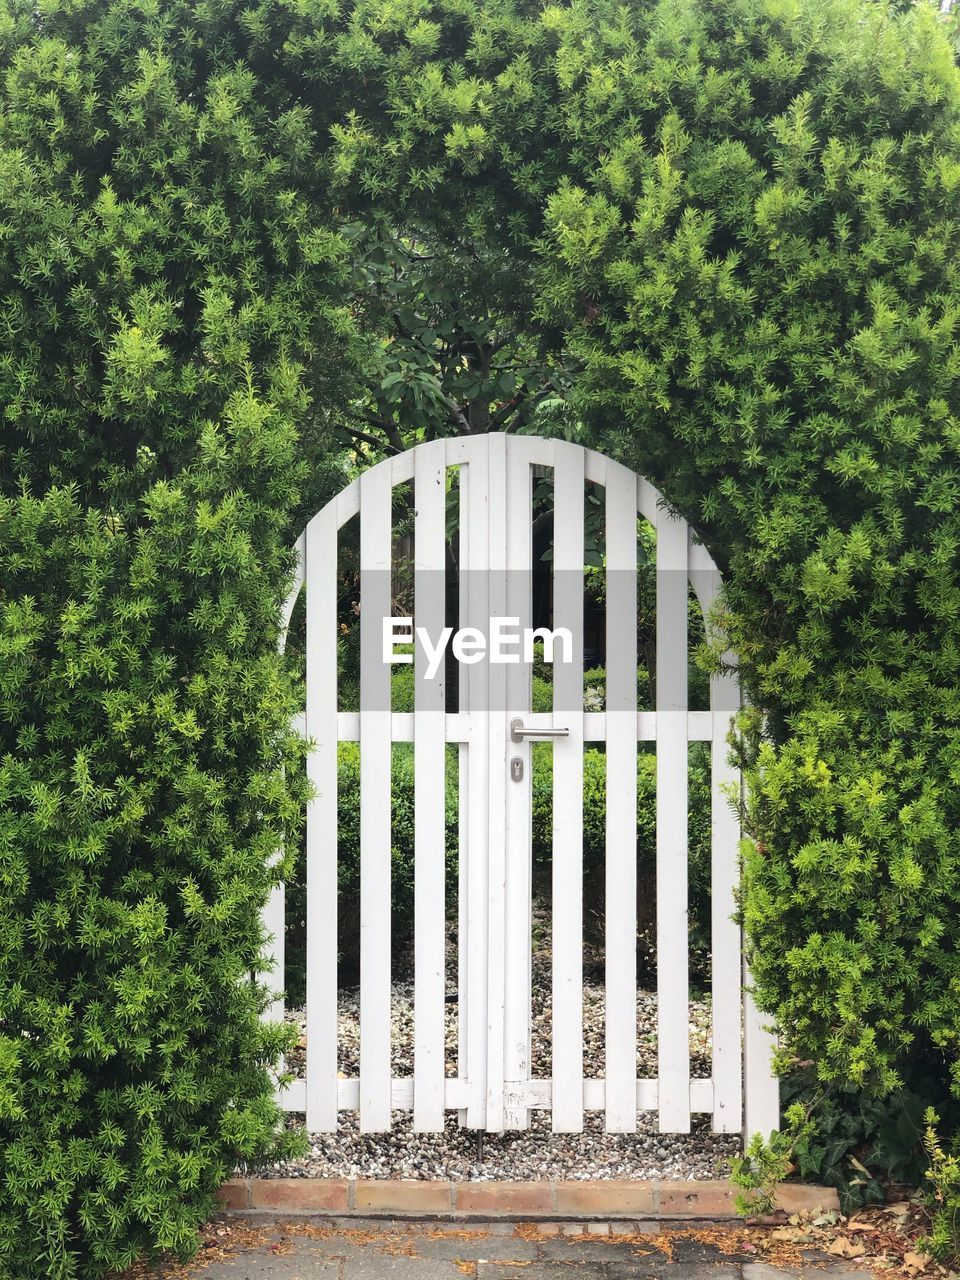 plant, green color, tree, no people, day, nature, growth, white color, safety, outdoors, architecture, protection, built structure, security, land, barrier, fence, gate, closed, boundary, hedge